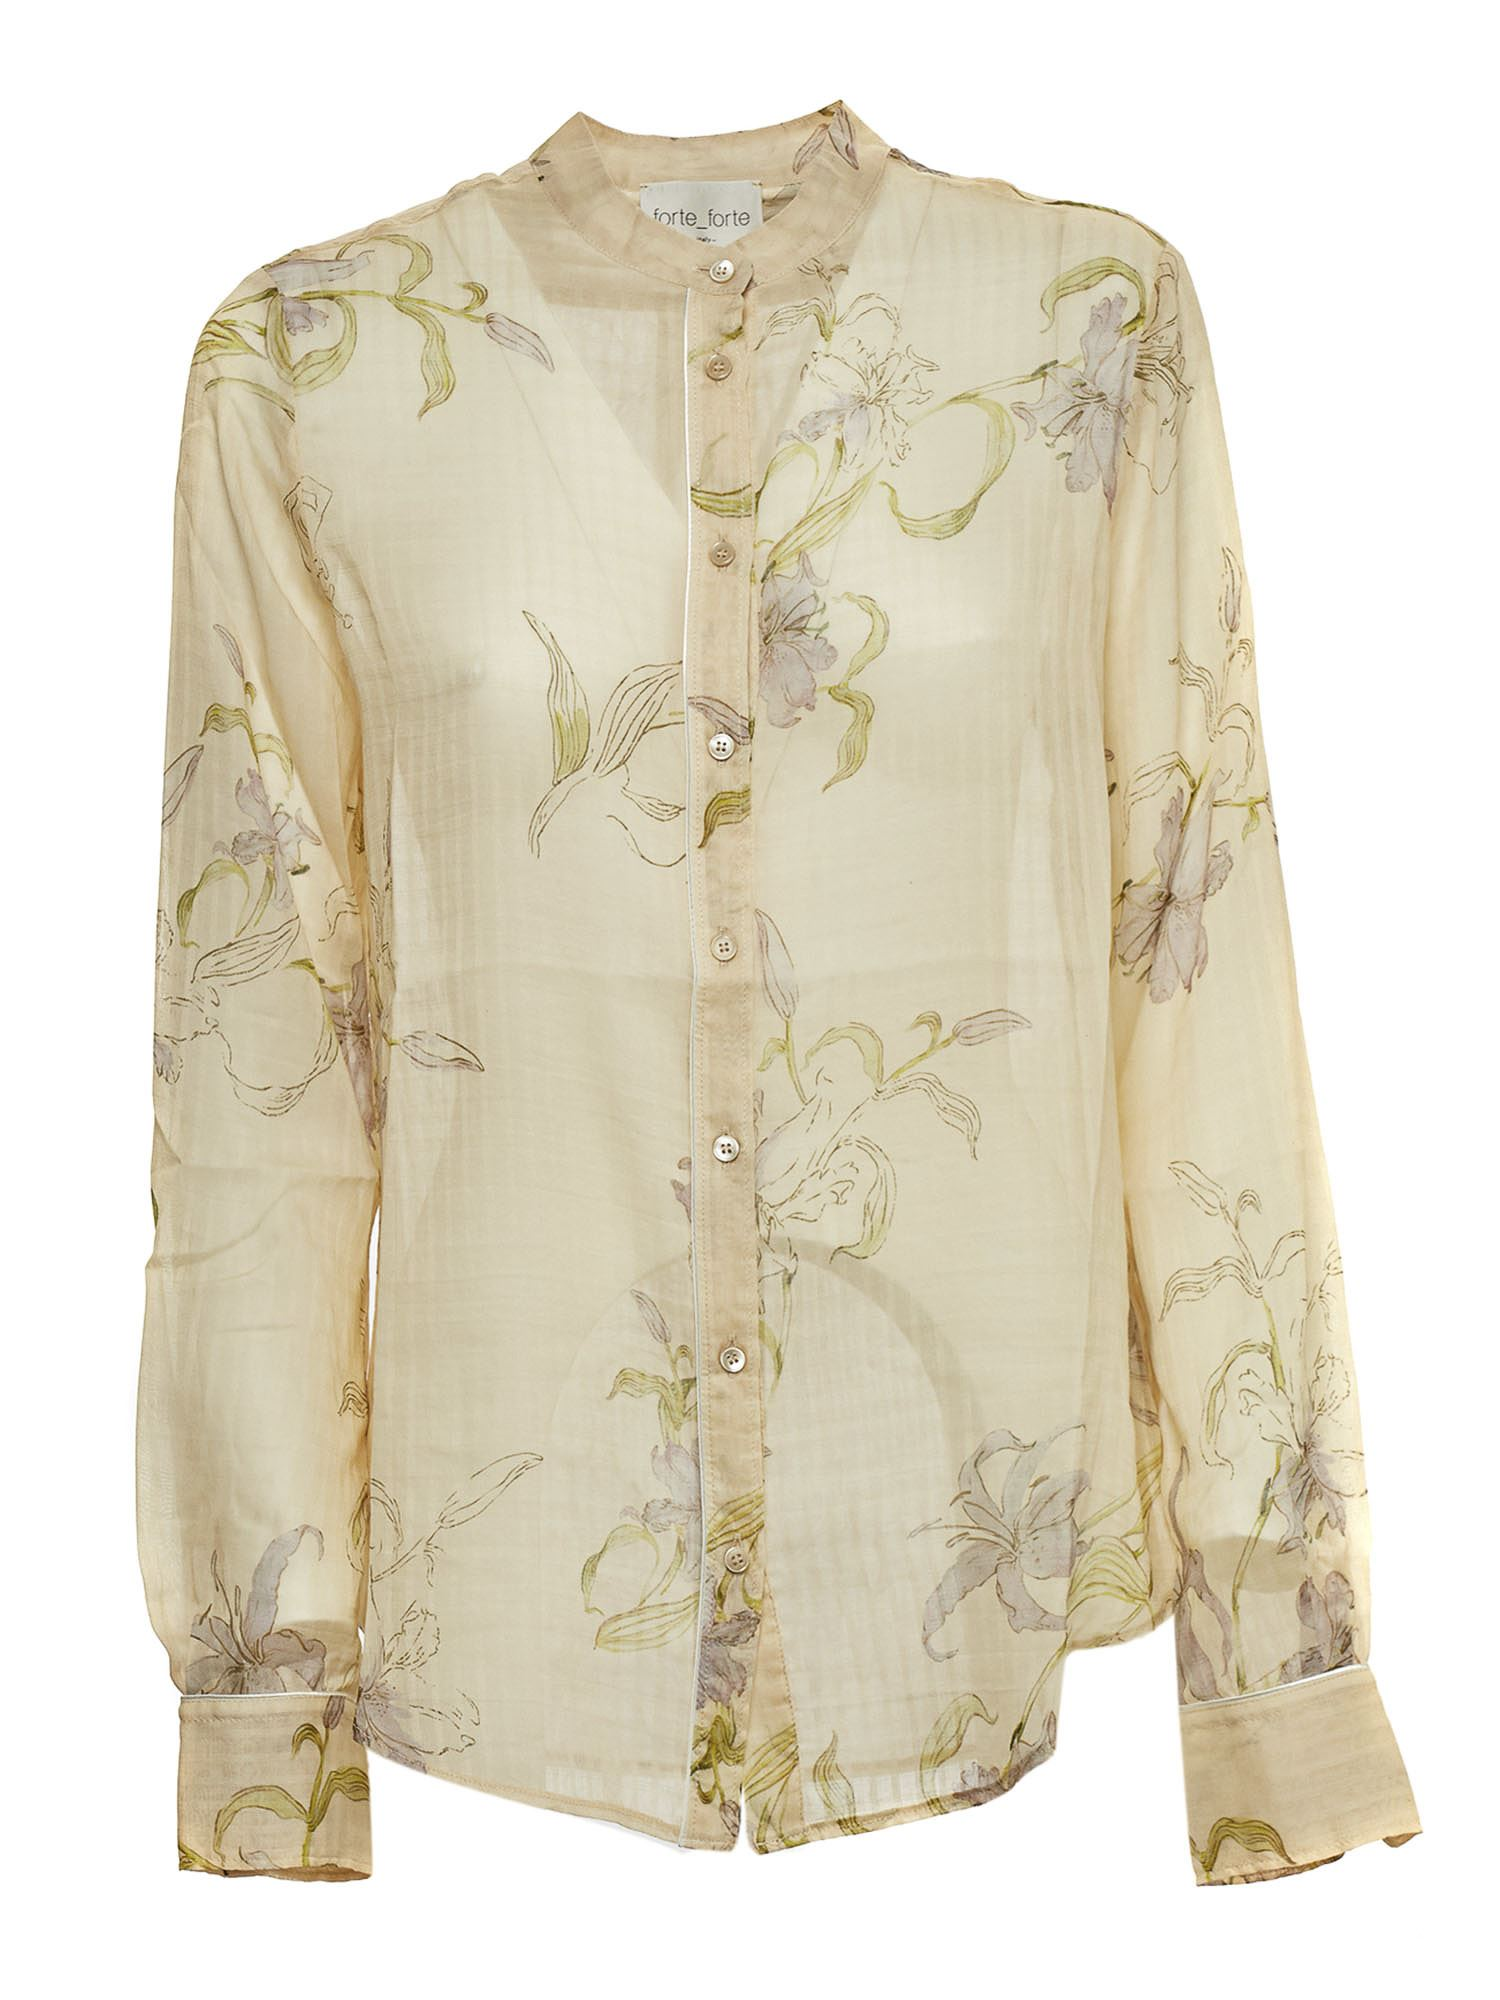 Forte Forte FLORAL SHIRT IN PEACH COLOR